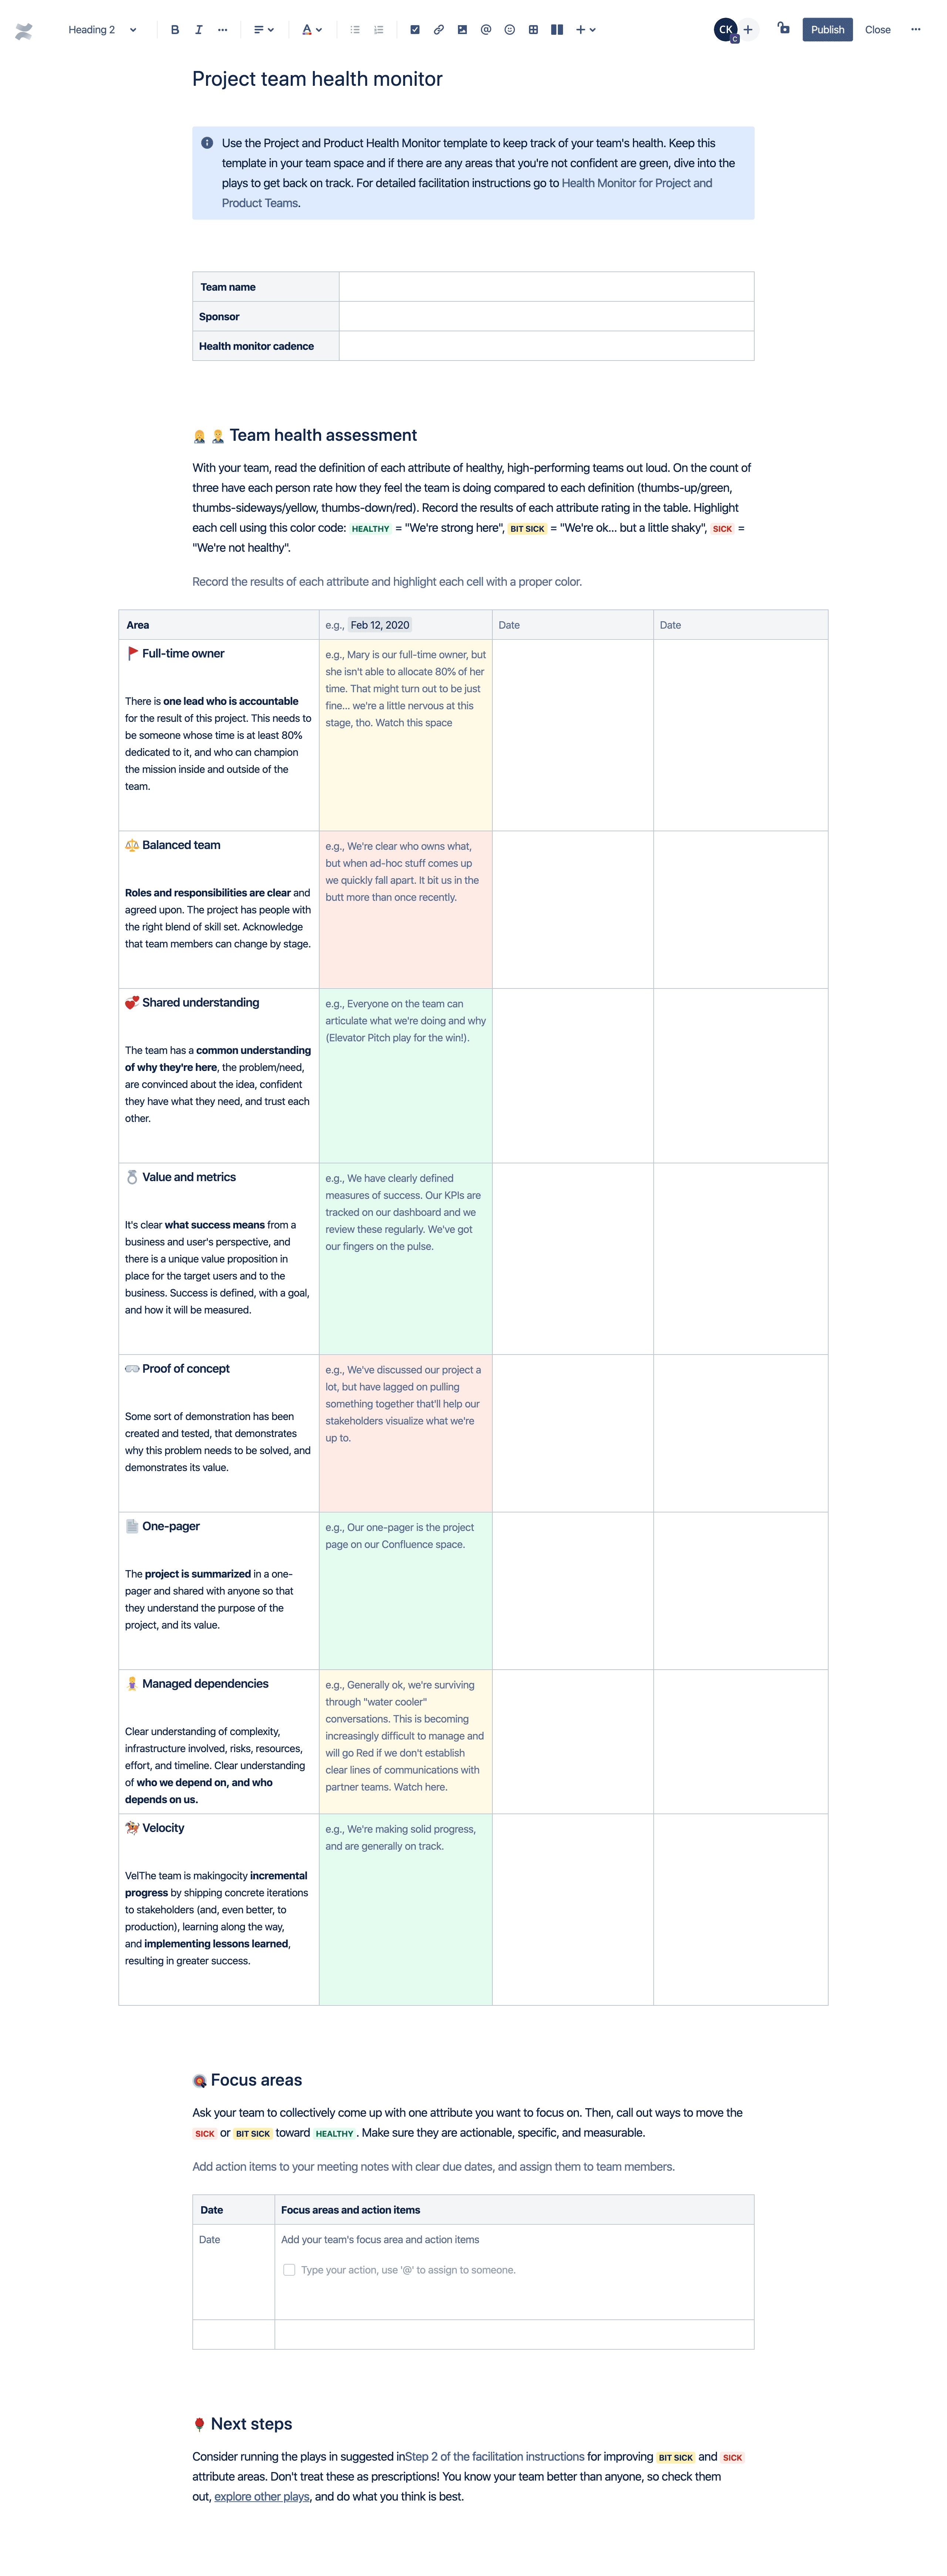 Project team health monitor template